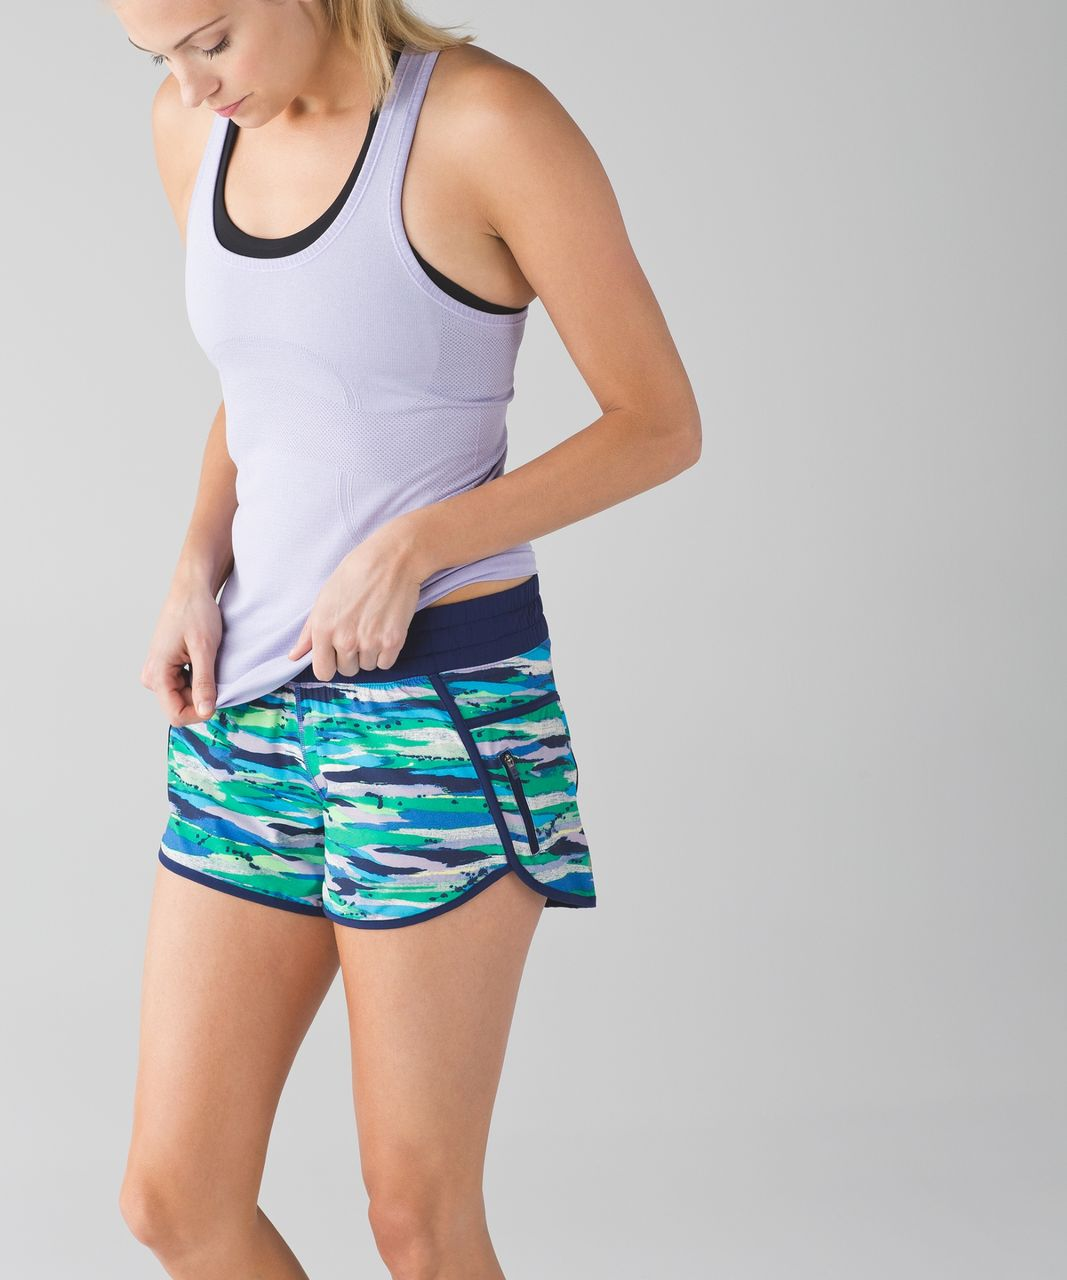 Lululemon Tracker Short III - Seven Wonders Multi / Hero Blue